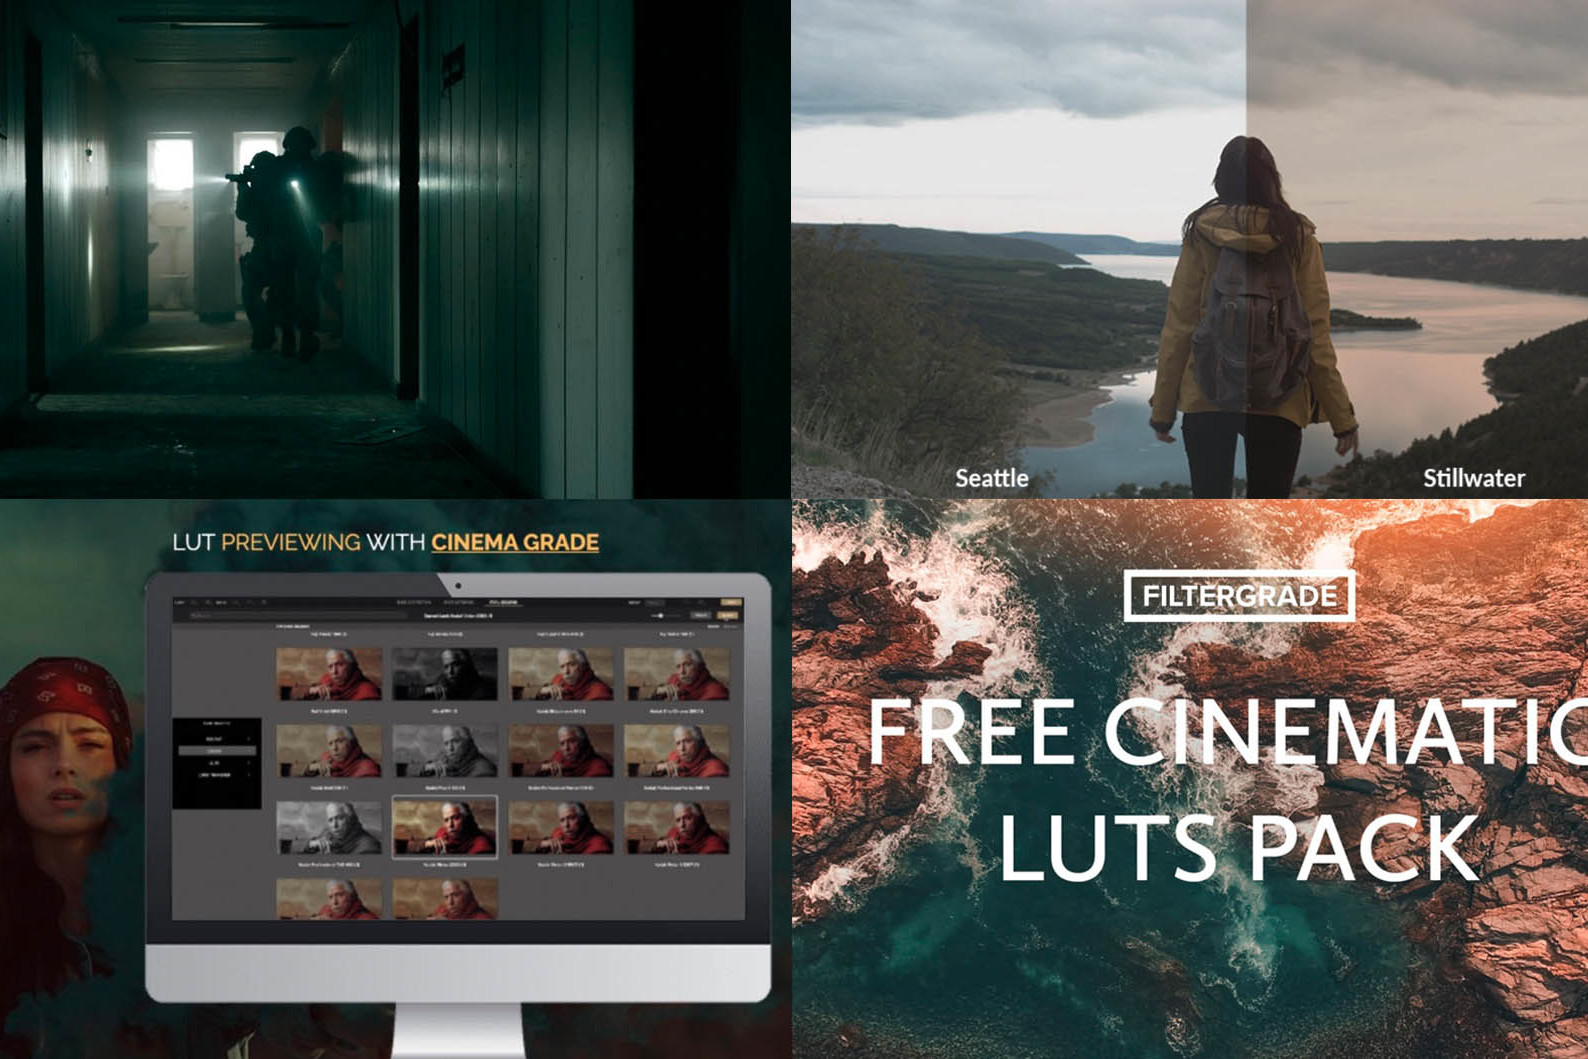 266 Free Cinematic LUTs